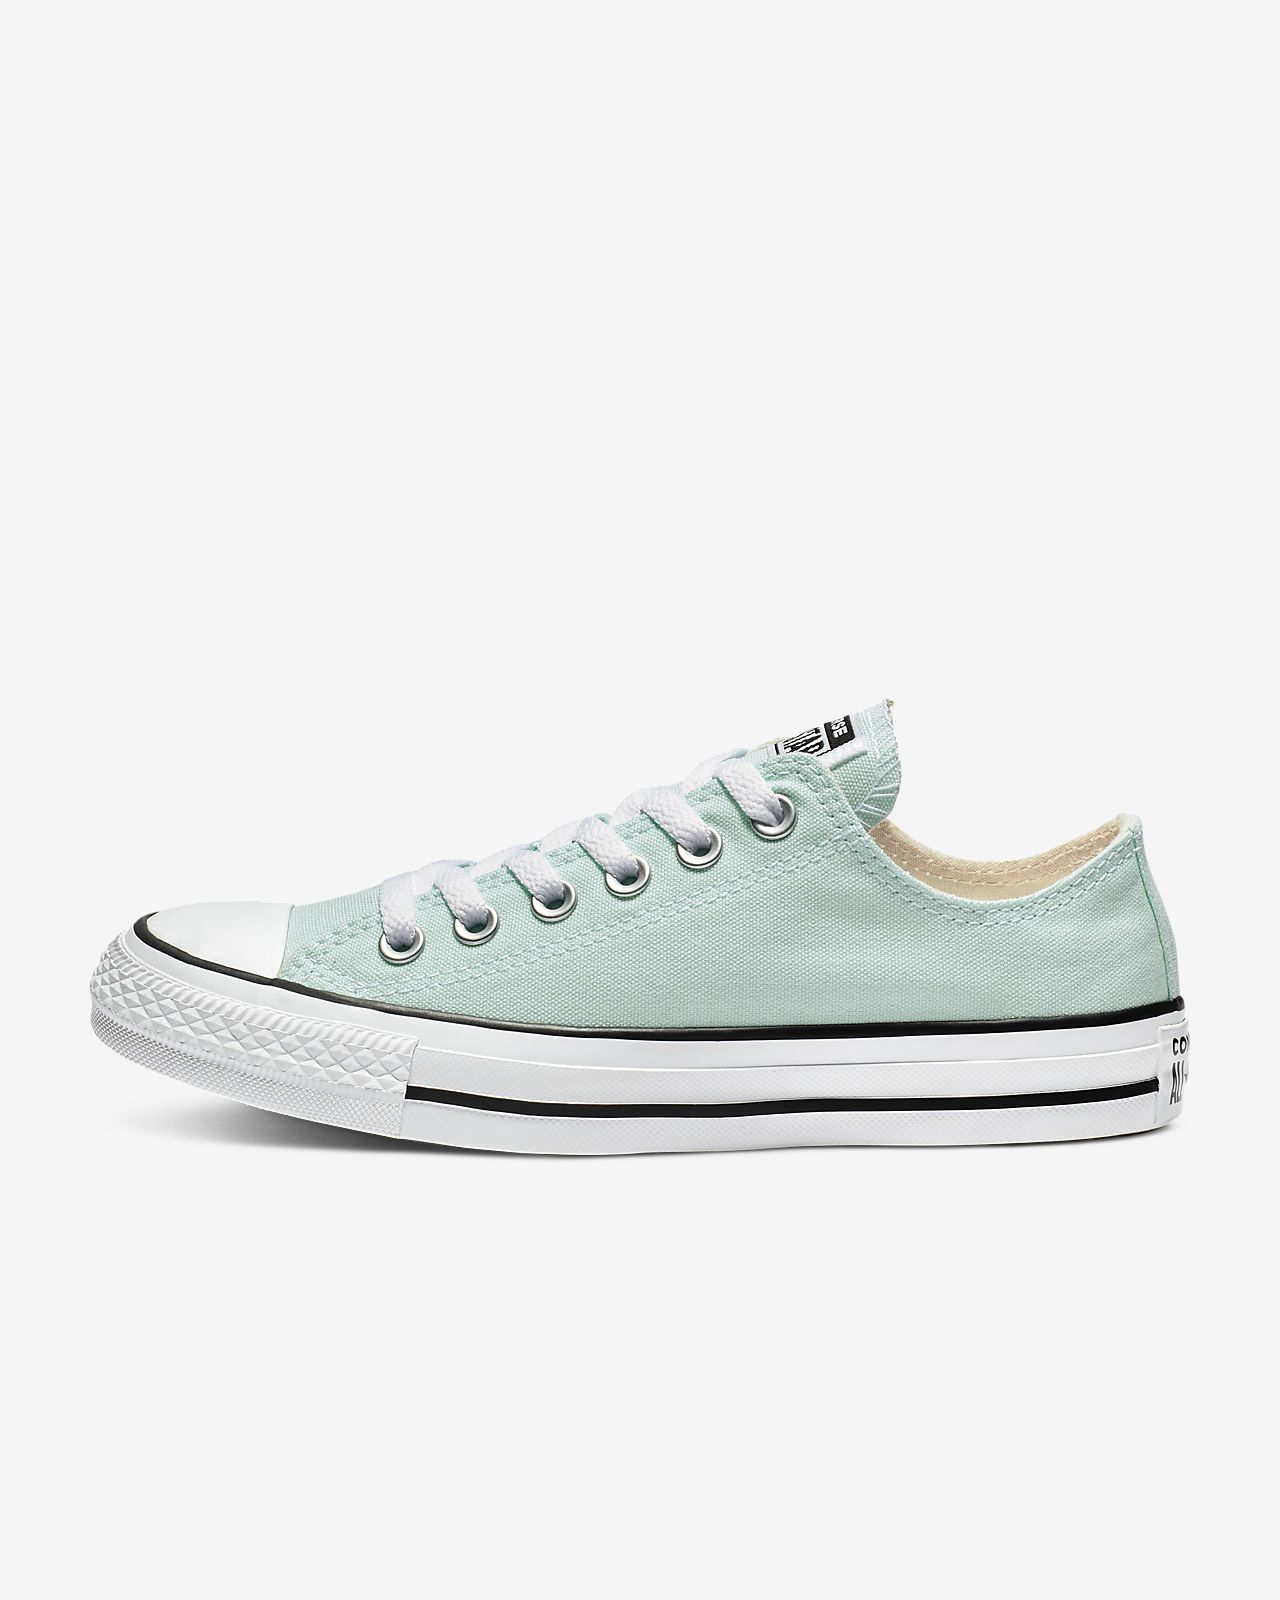 Chuck Taylor All Star Seasonal Color Low Top  Unisex Shoe